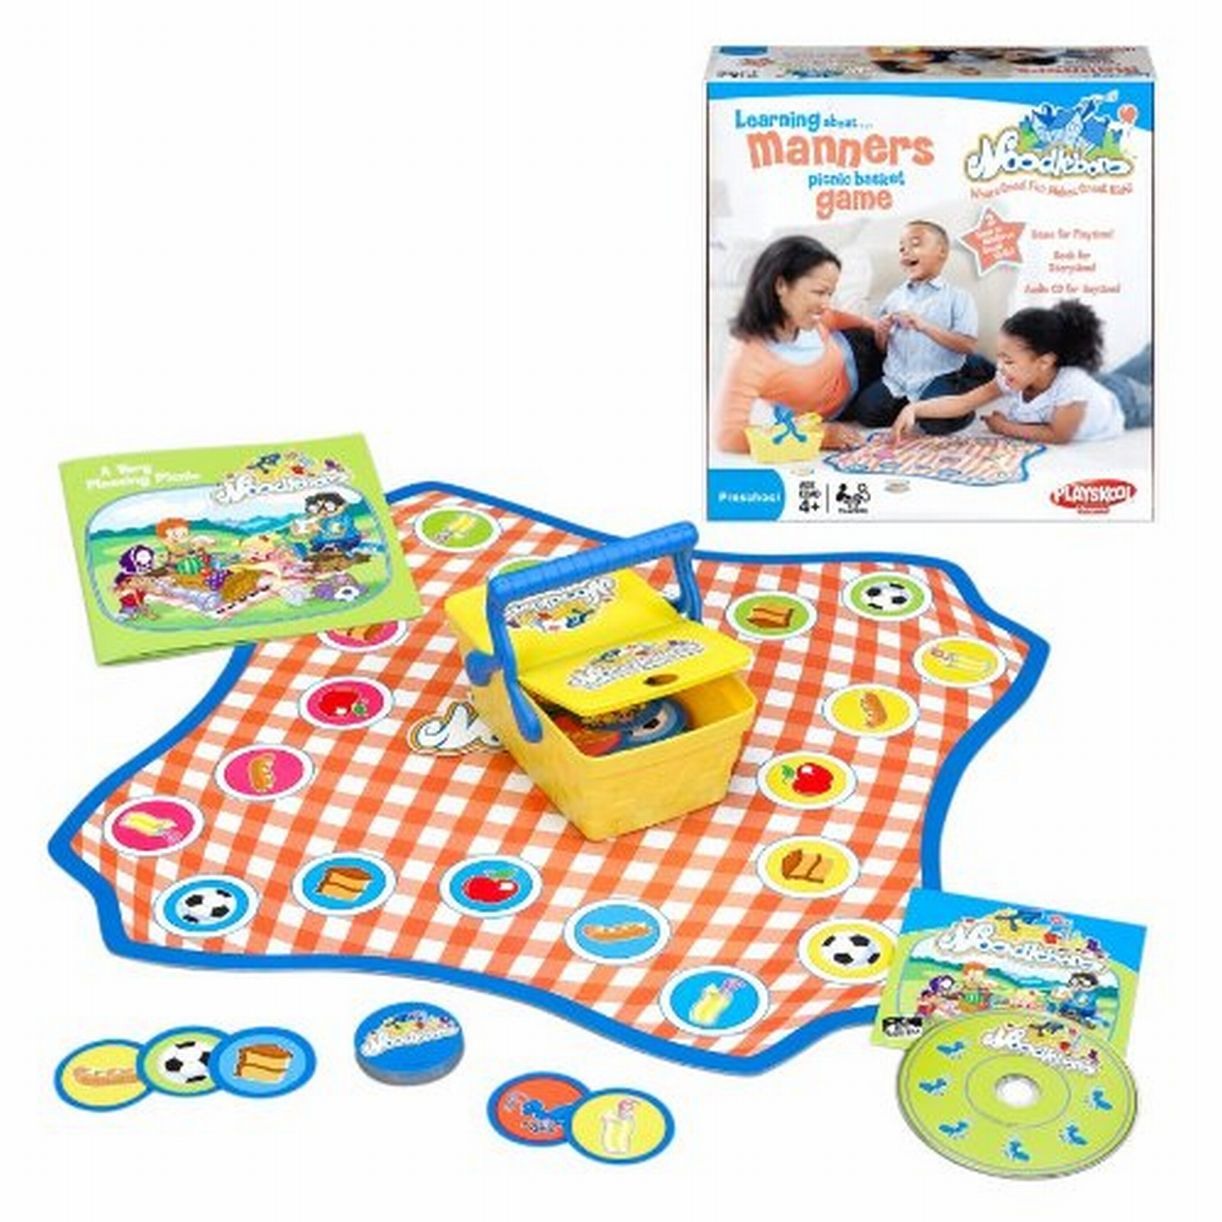 Playskool Noodleboro Learning about Manners Picnic Basket Preschool Game